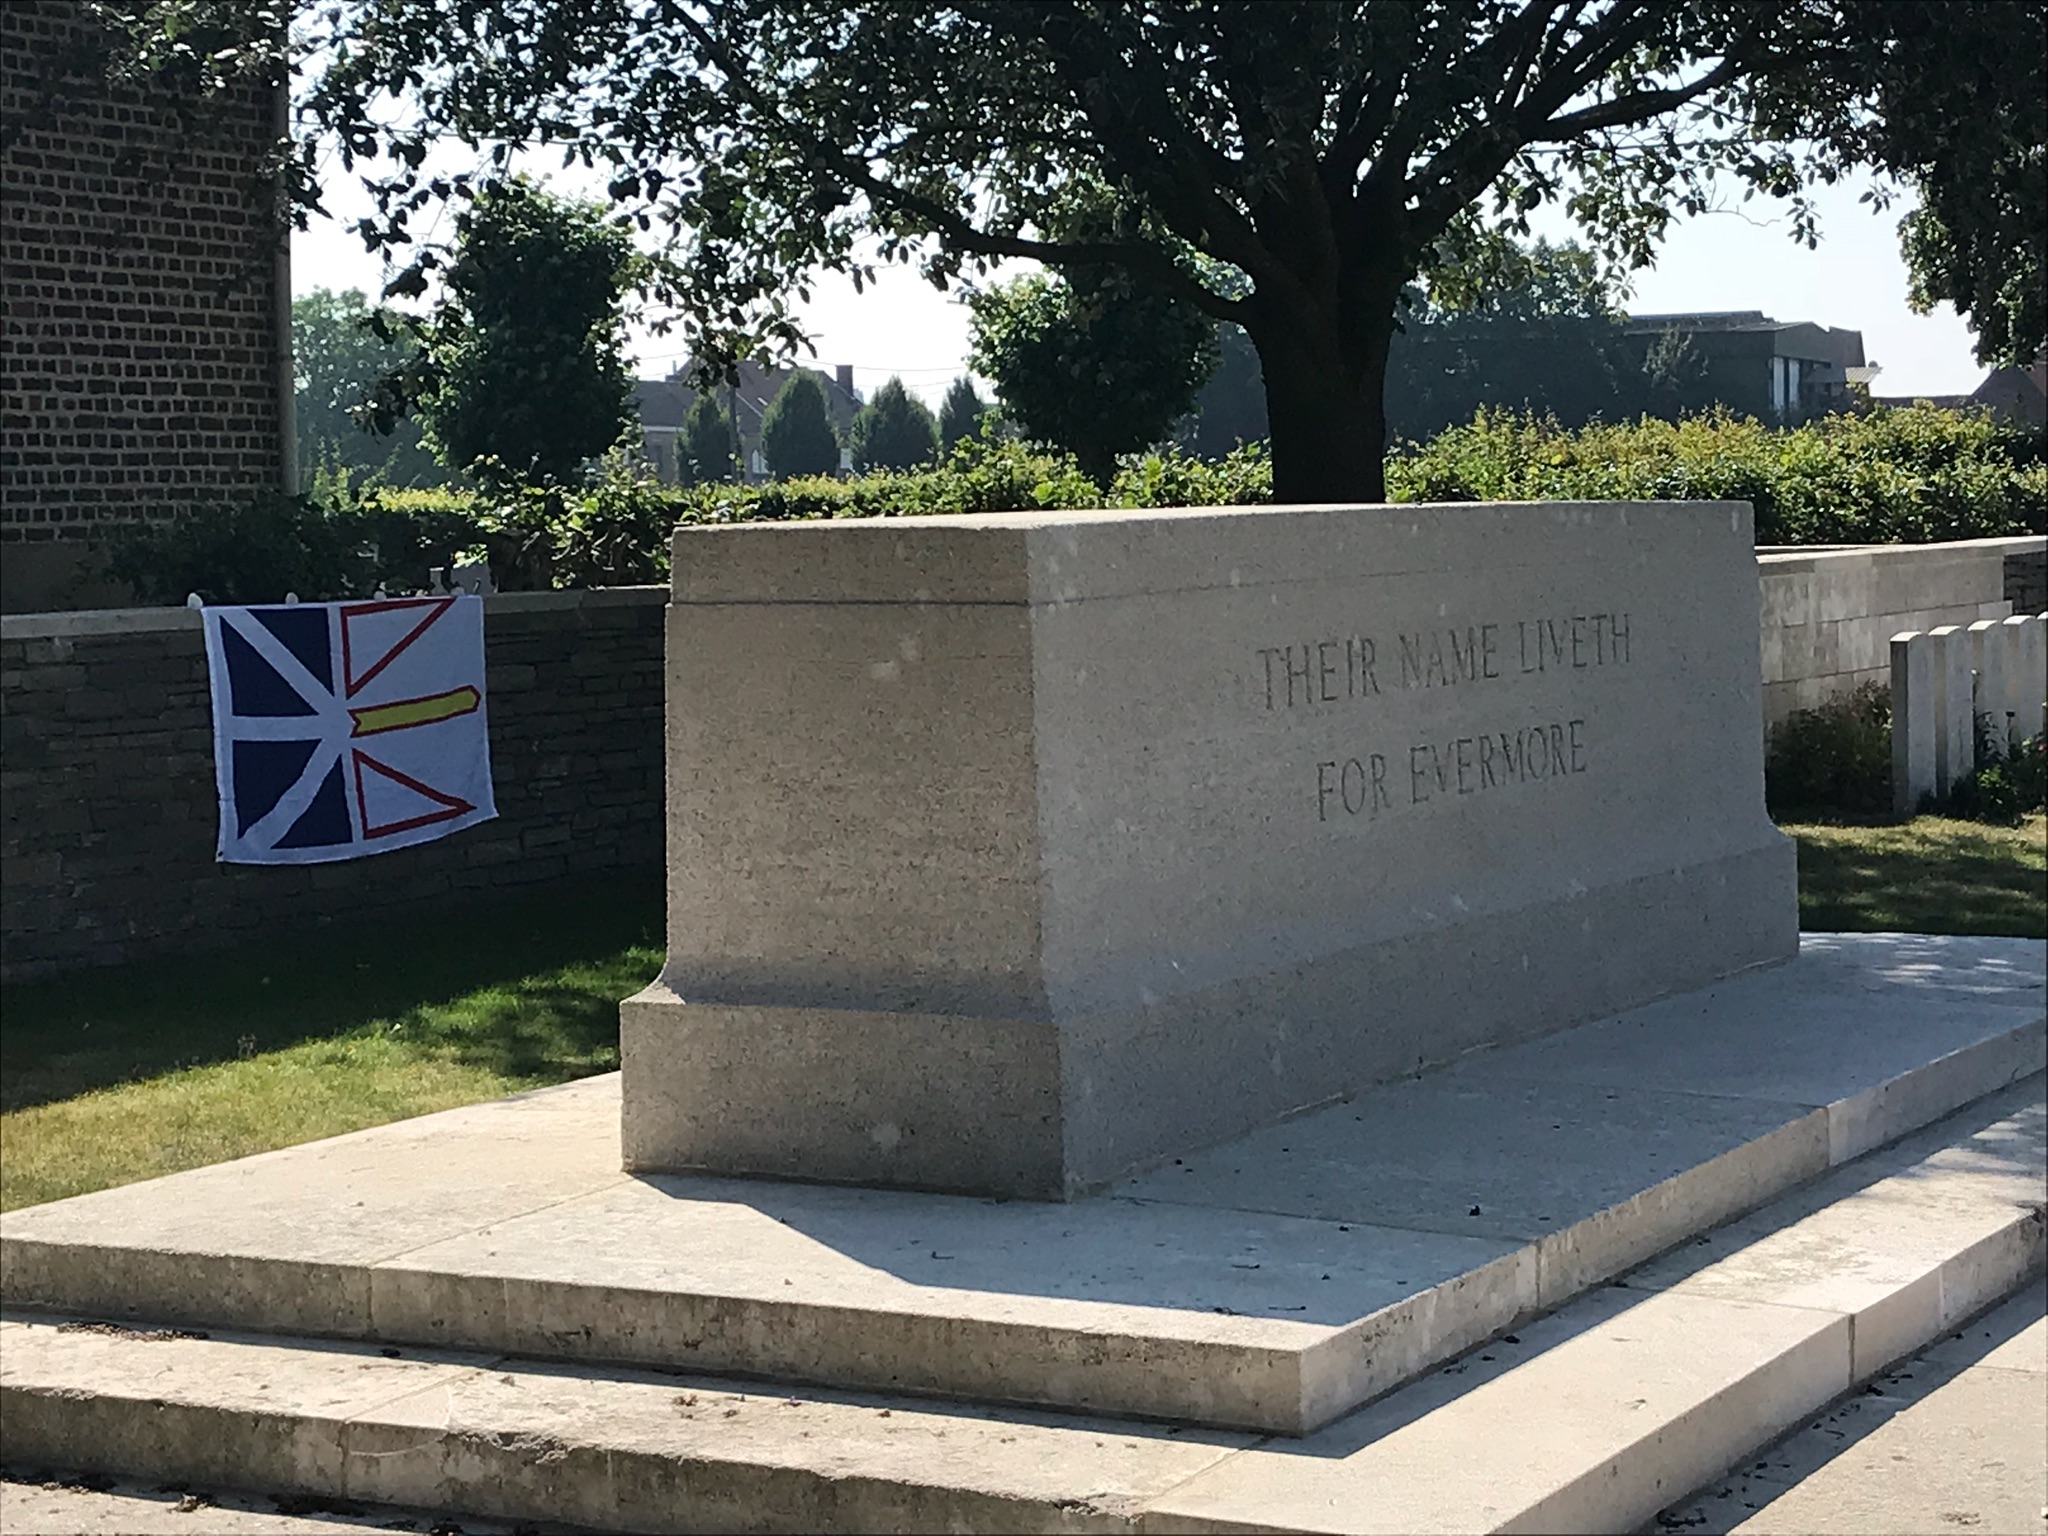 A monument at a British cemetery.